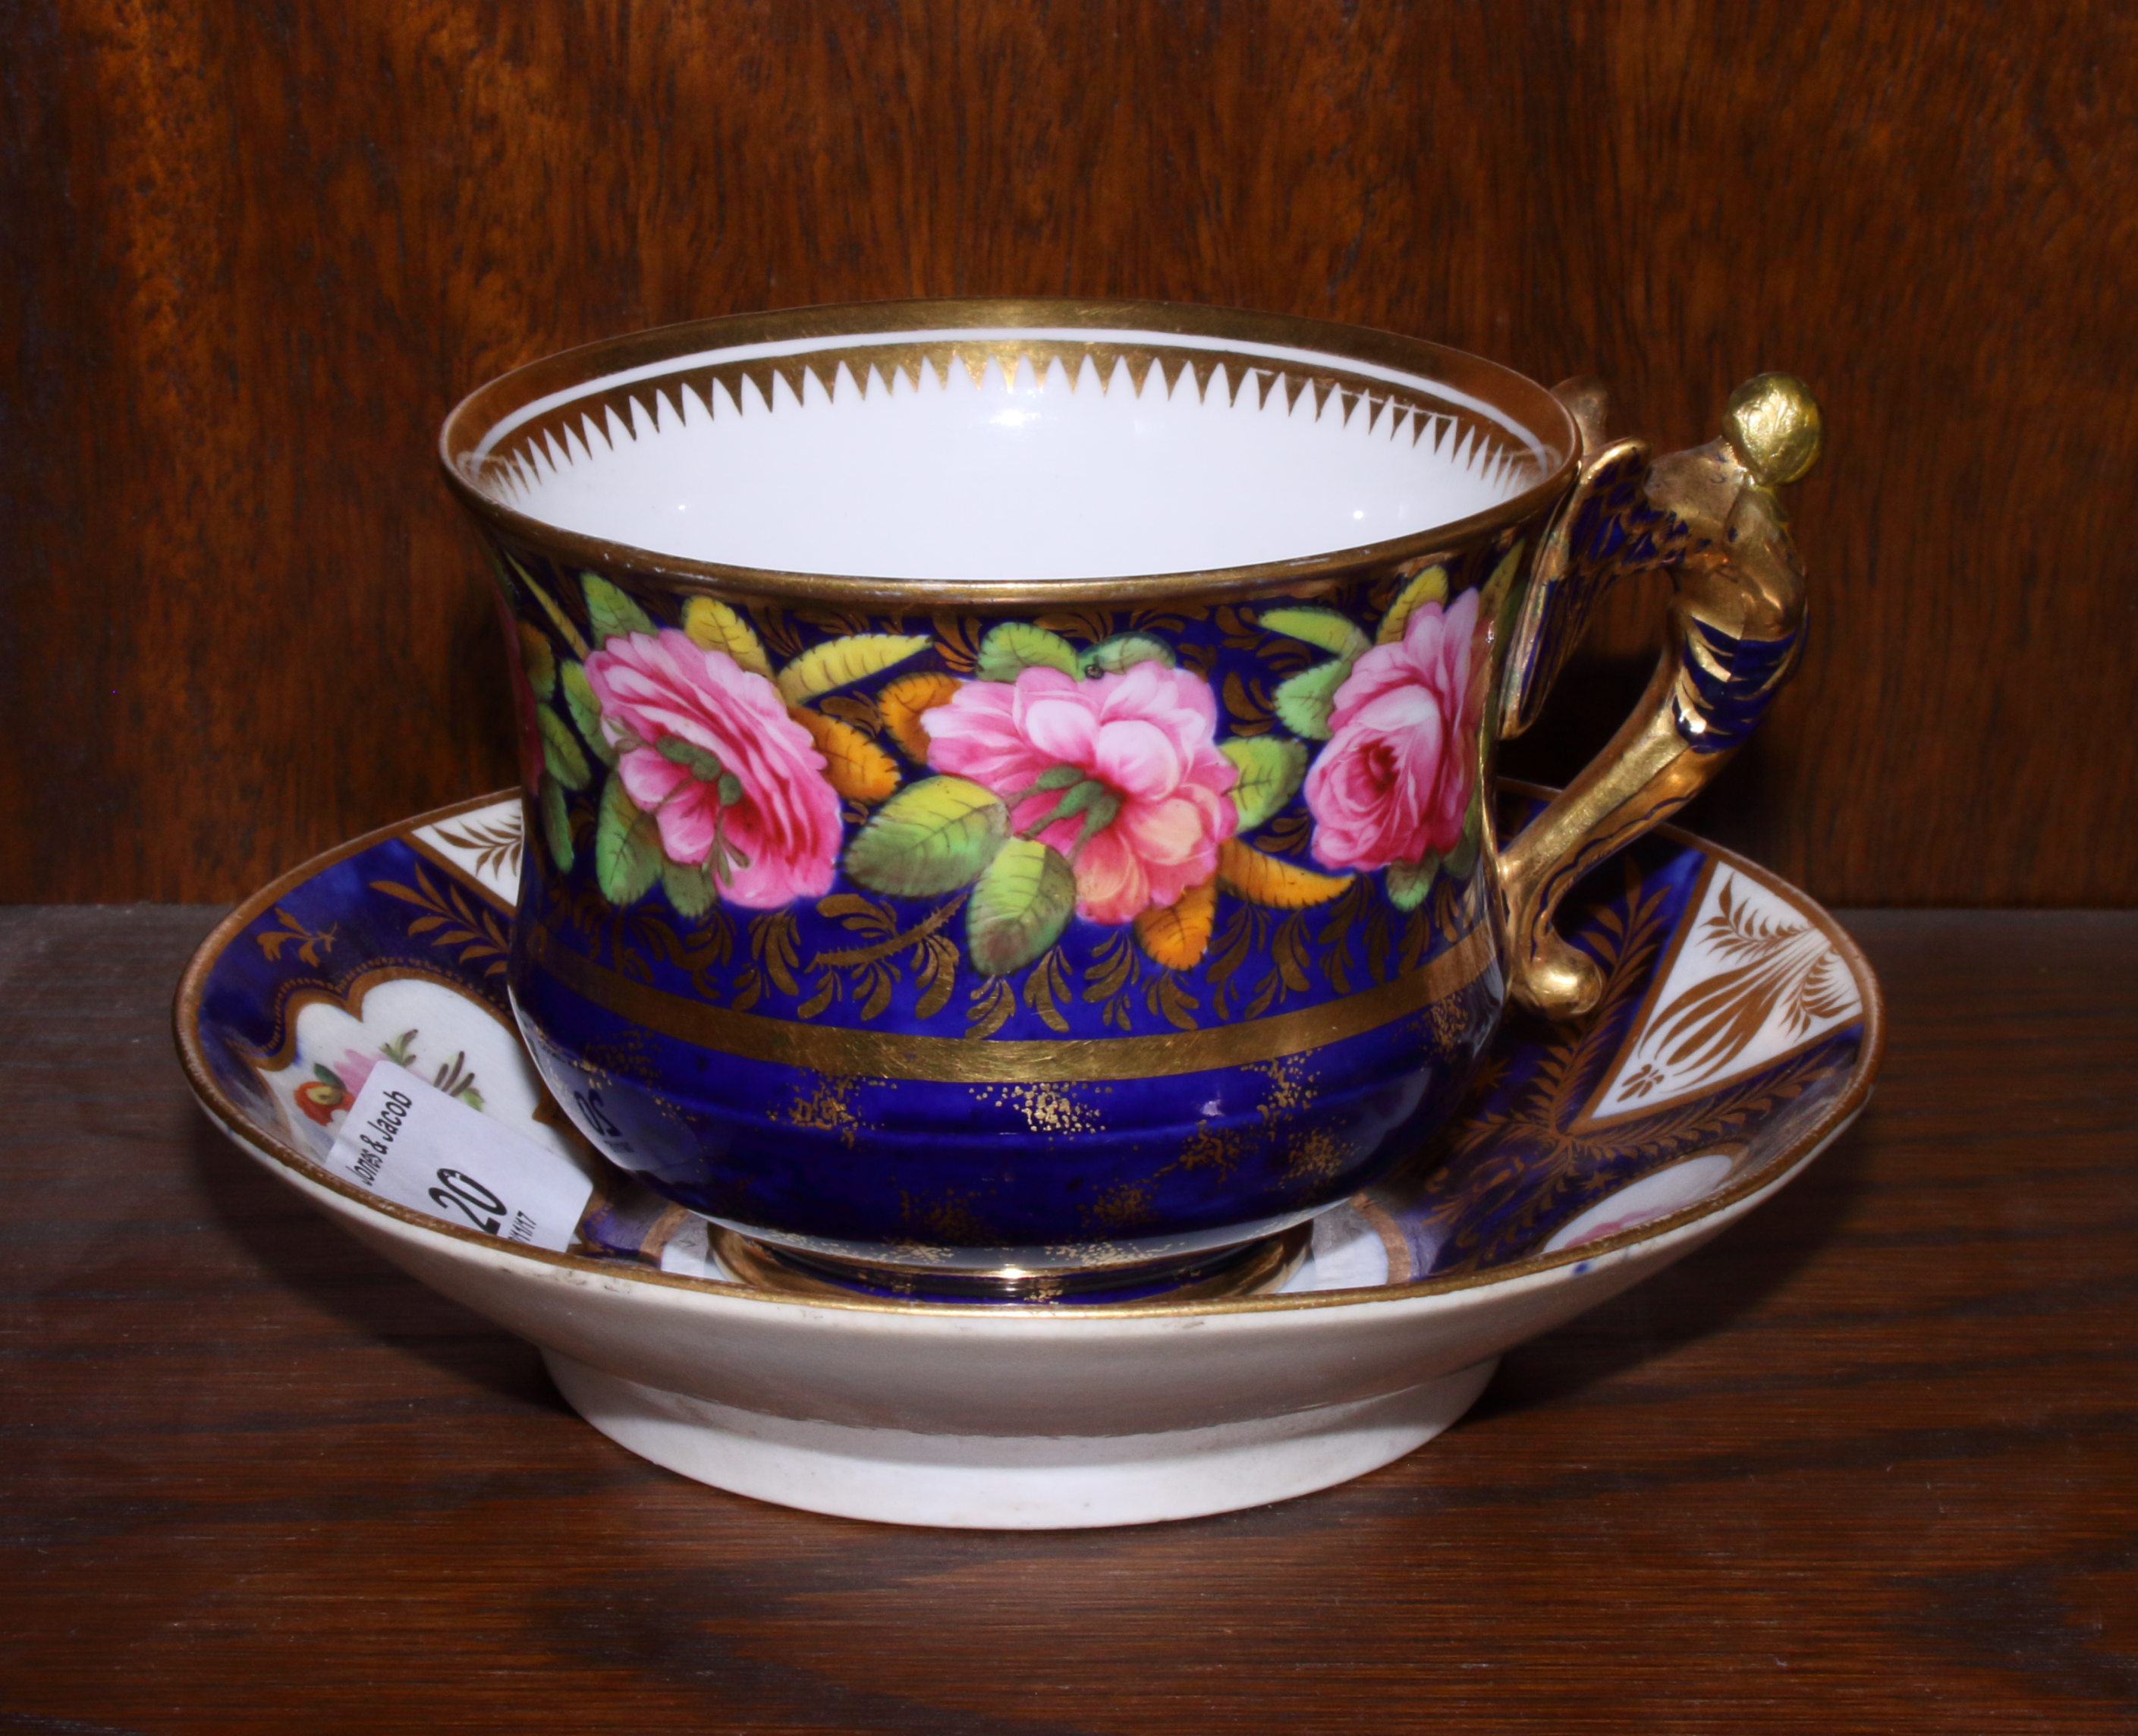 Lot 20 - Four 19th century porcelain cups and saucers including Coalport, decorated with flowers on a